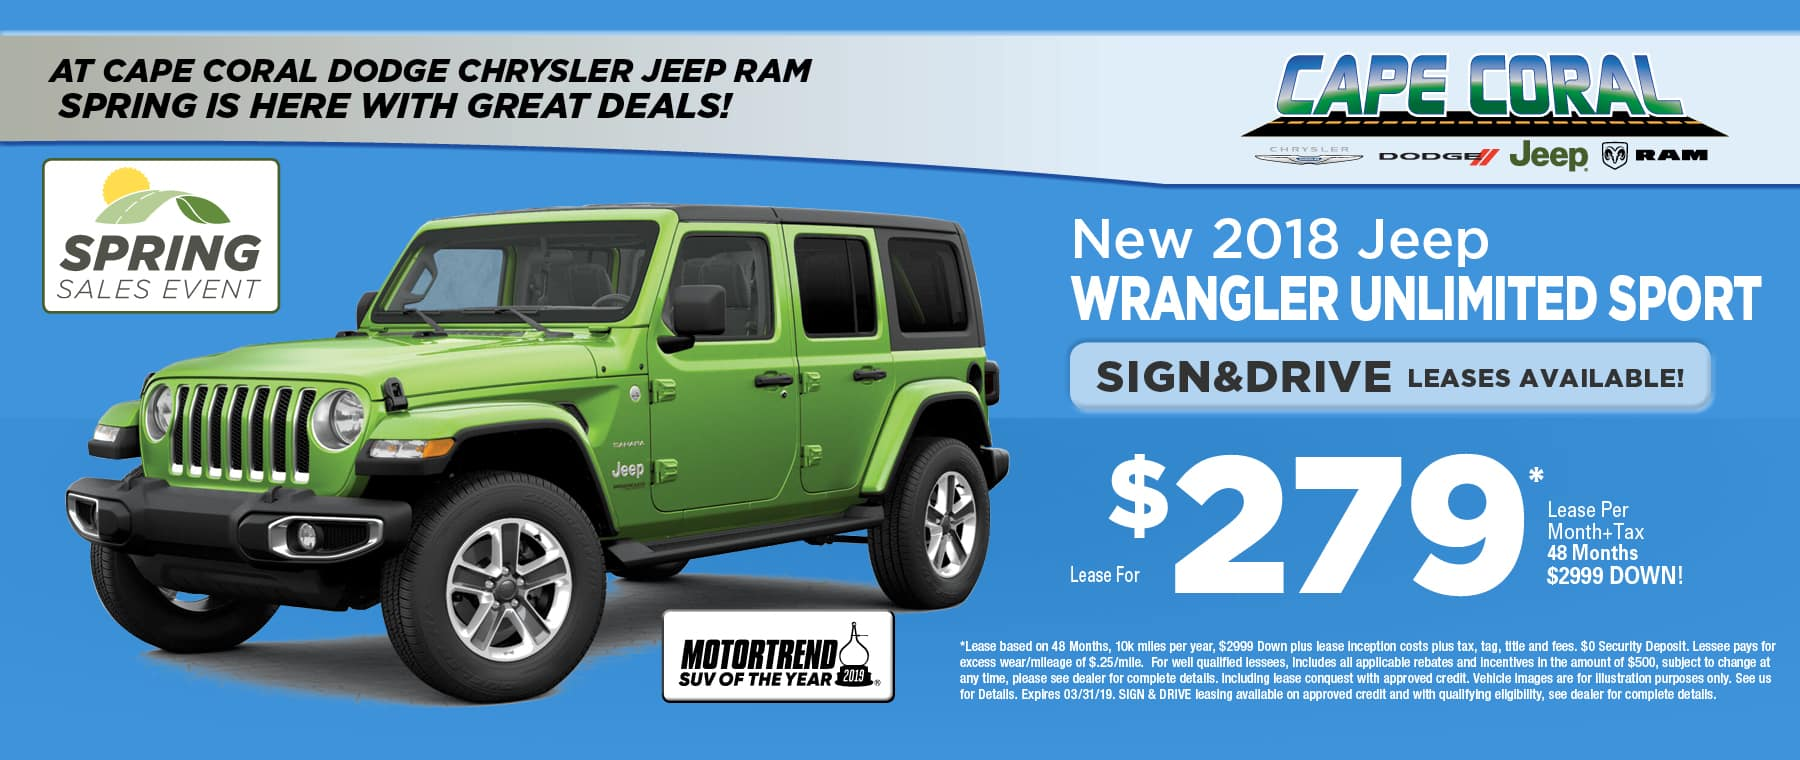 Mototrend's SUV Of the Year - Jeep Wrangler!